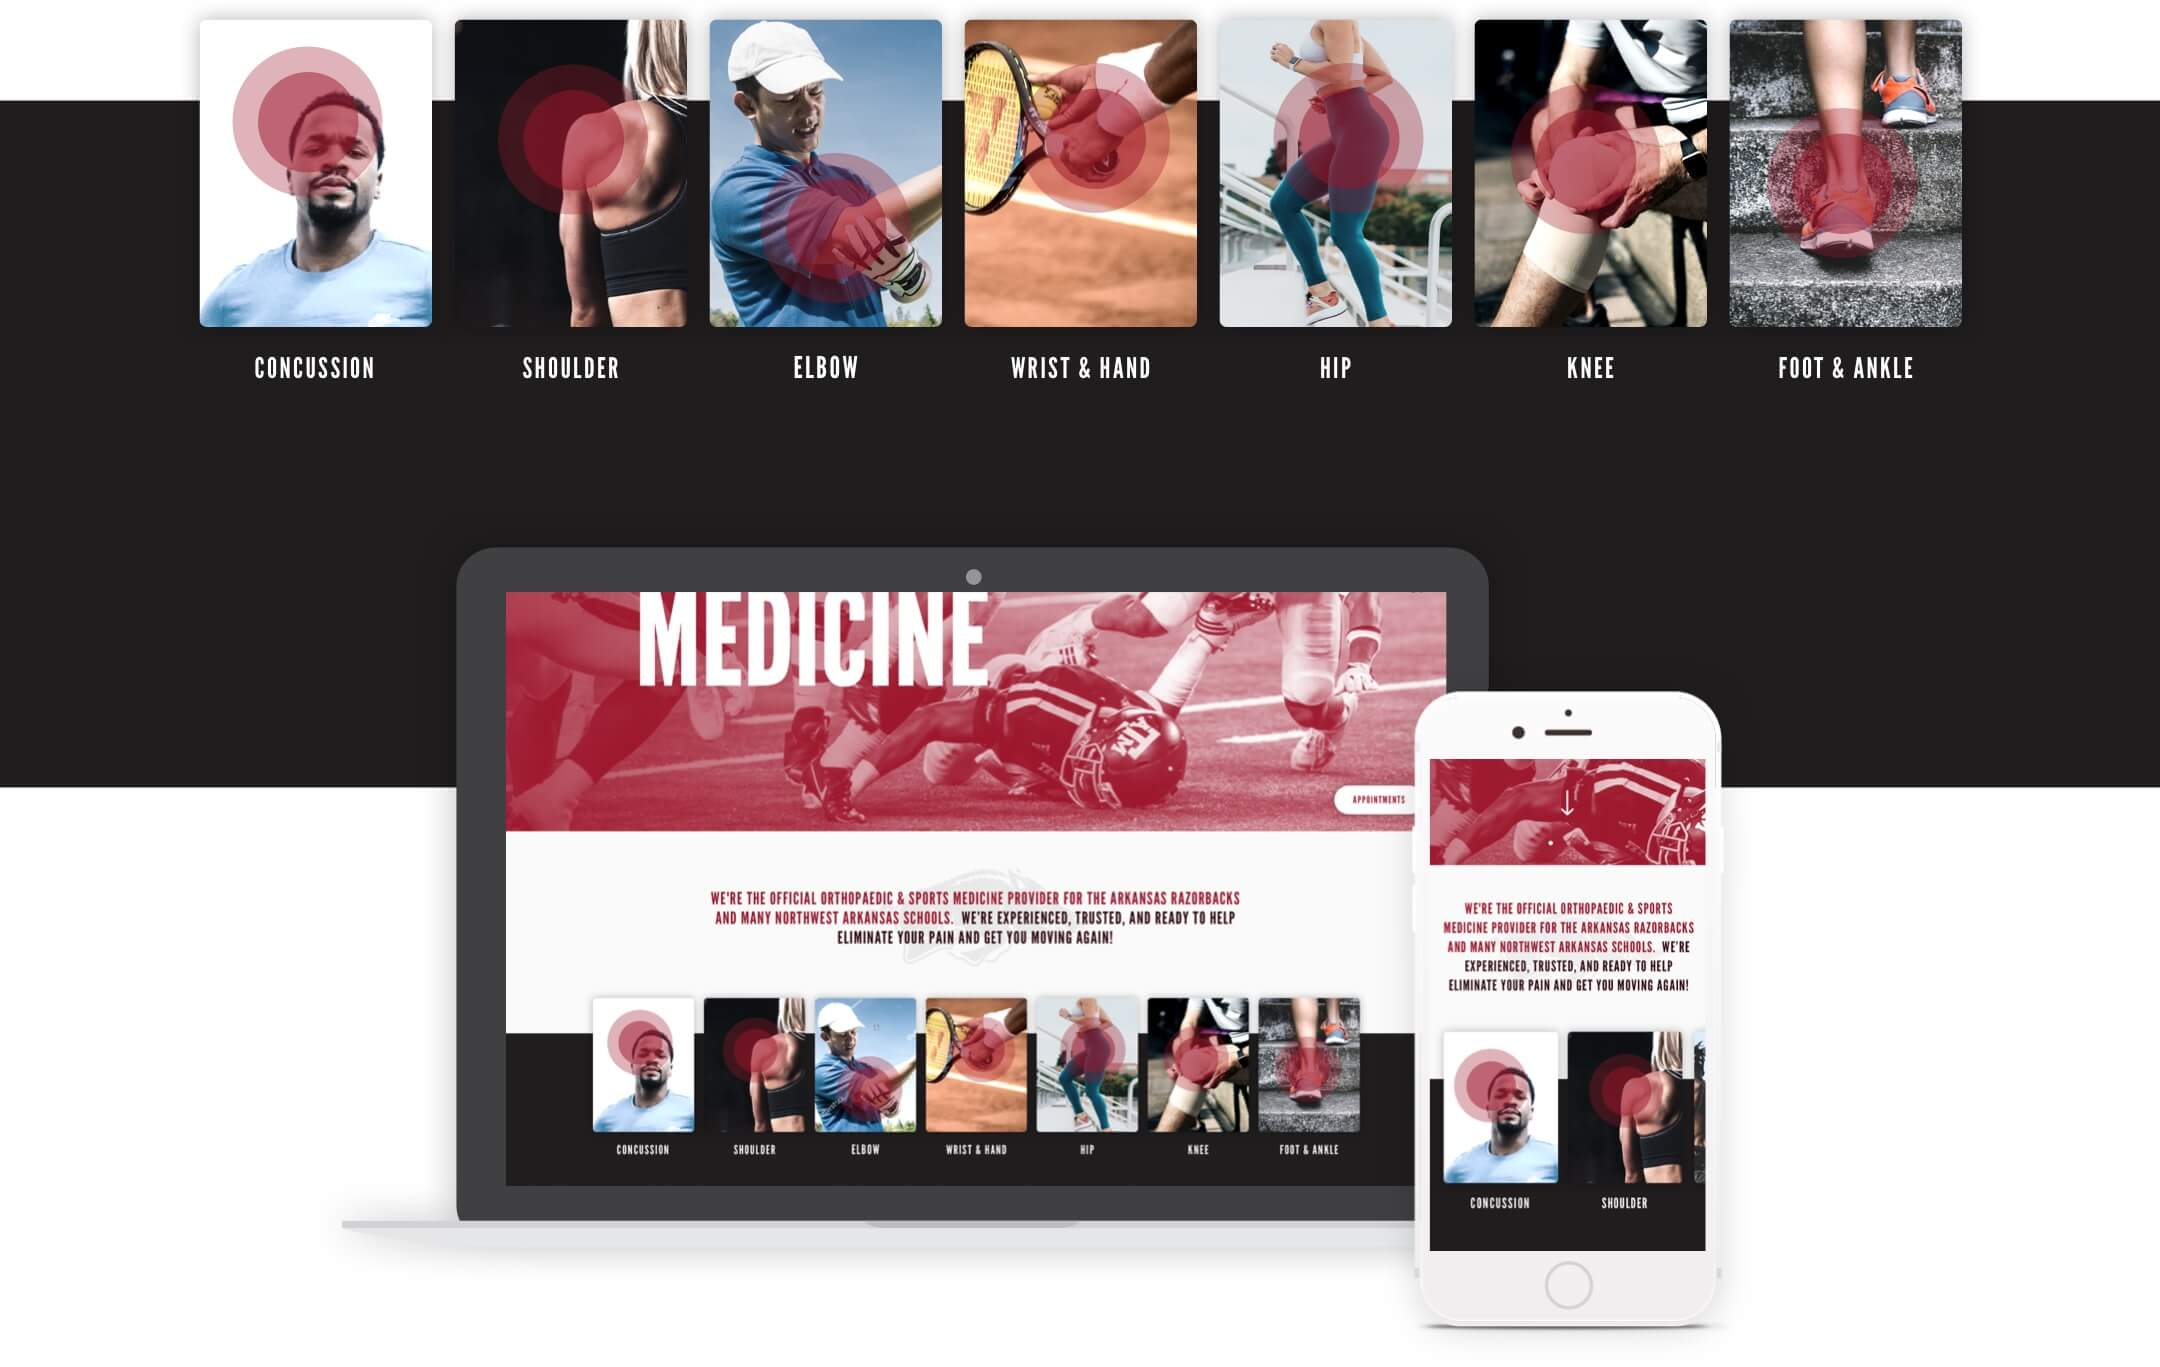 advanced orthopaedic specialists website designs